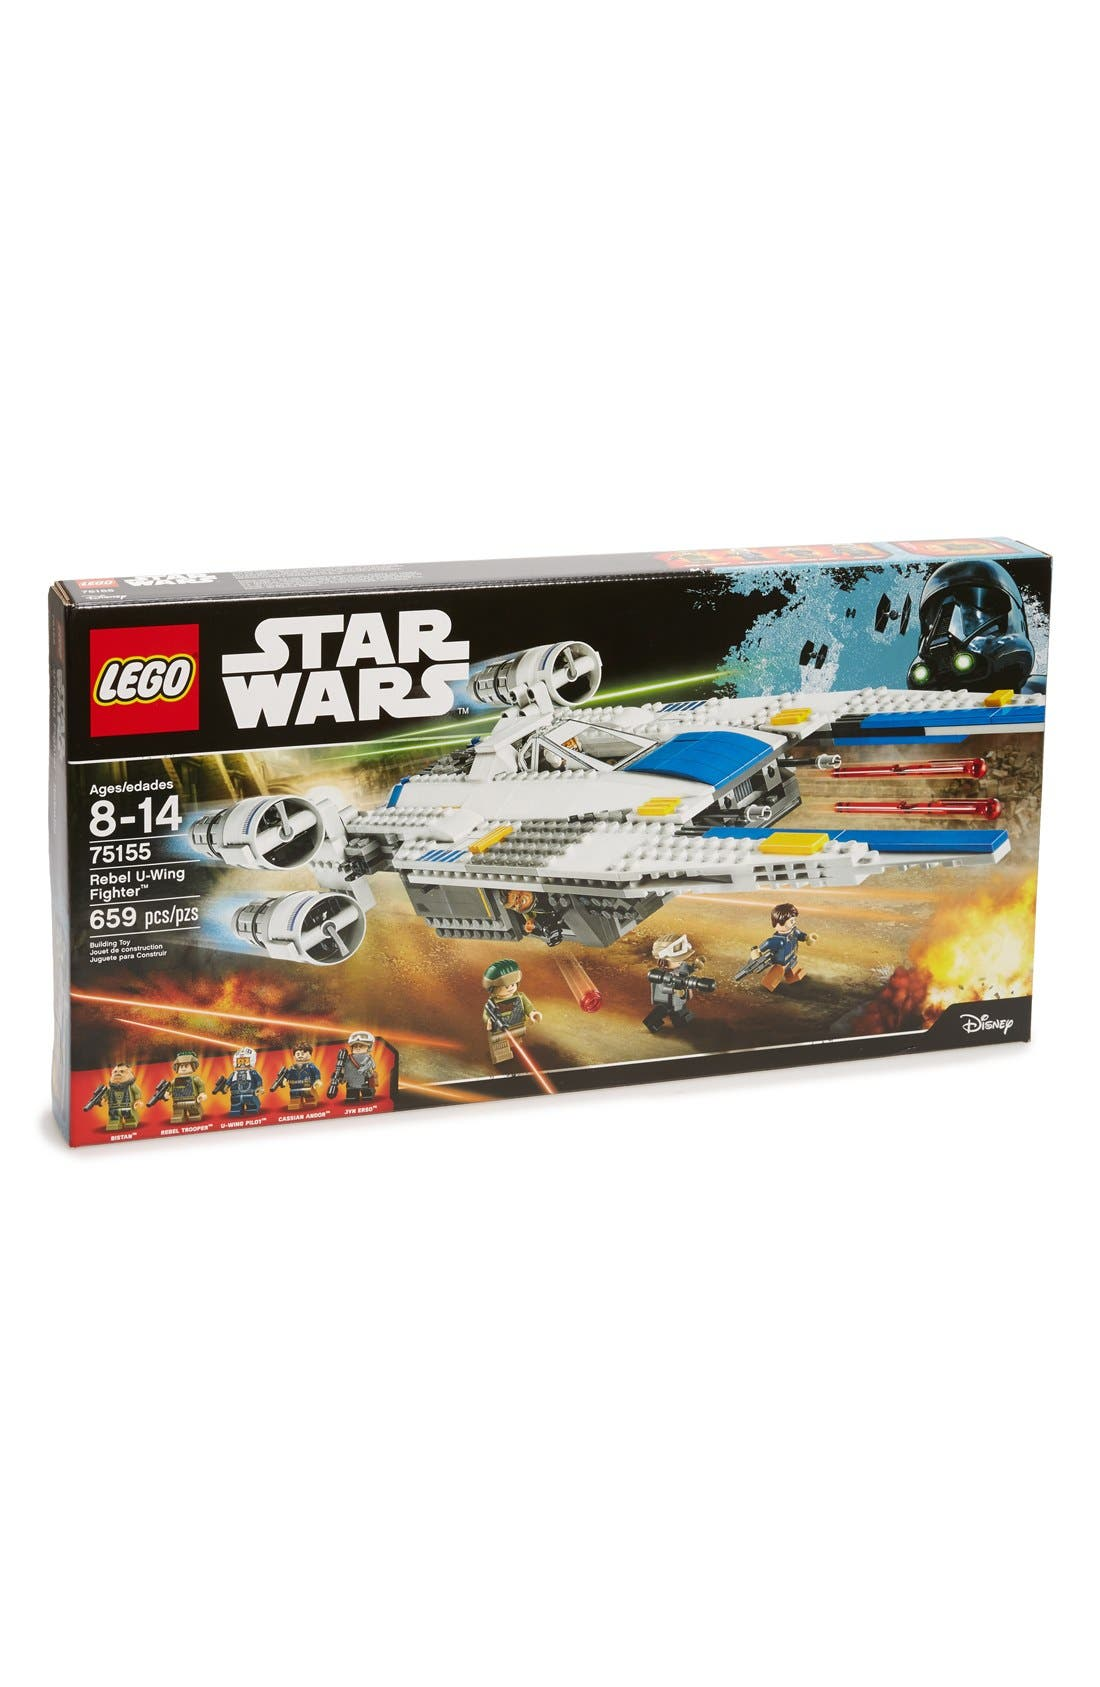 Star Wars<sup>™</sup> Rebel U-Wing Fighter<sup>™</sup> - 75155,                             Main thumbnail 1, color,